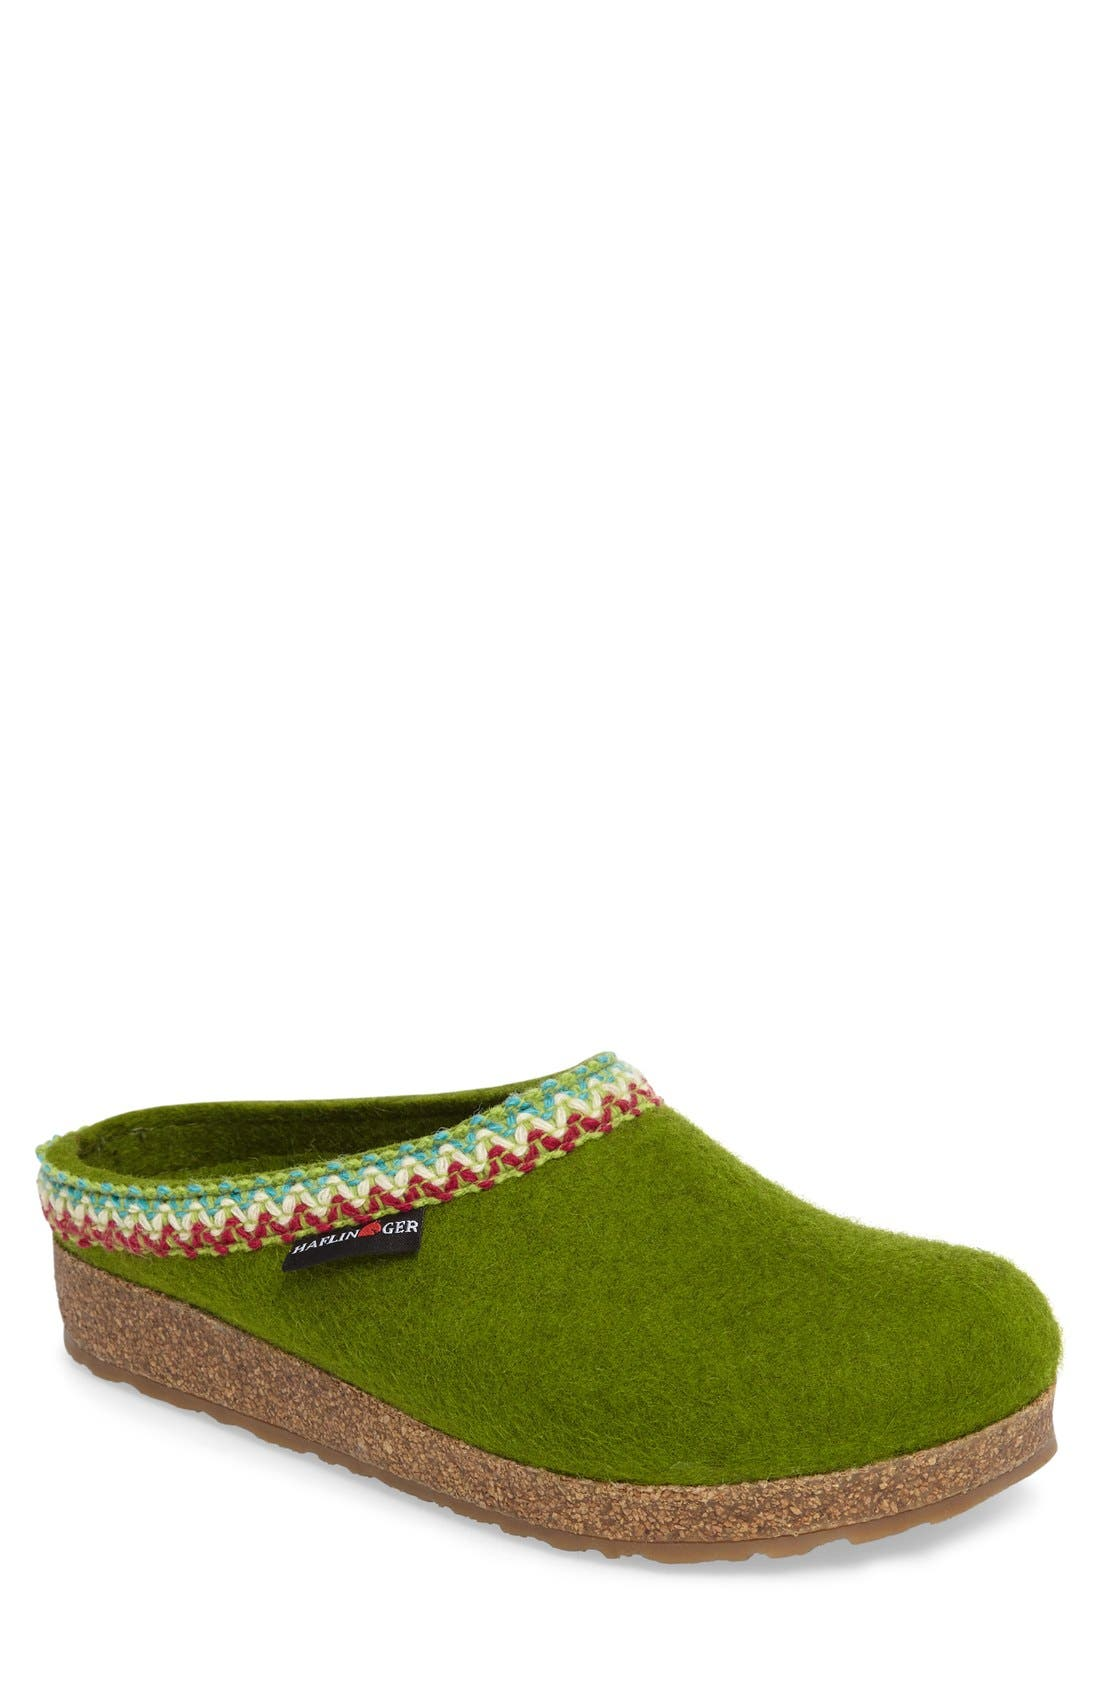 Zigzag Slipper,                             Main thumbnail 2, color,